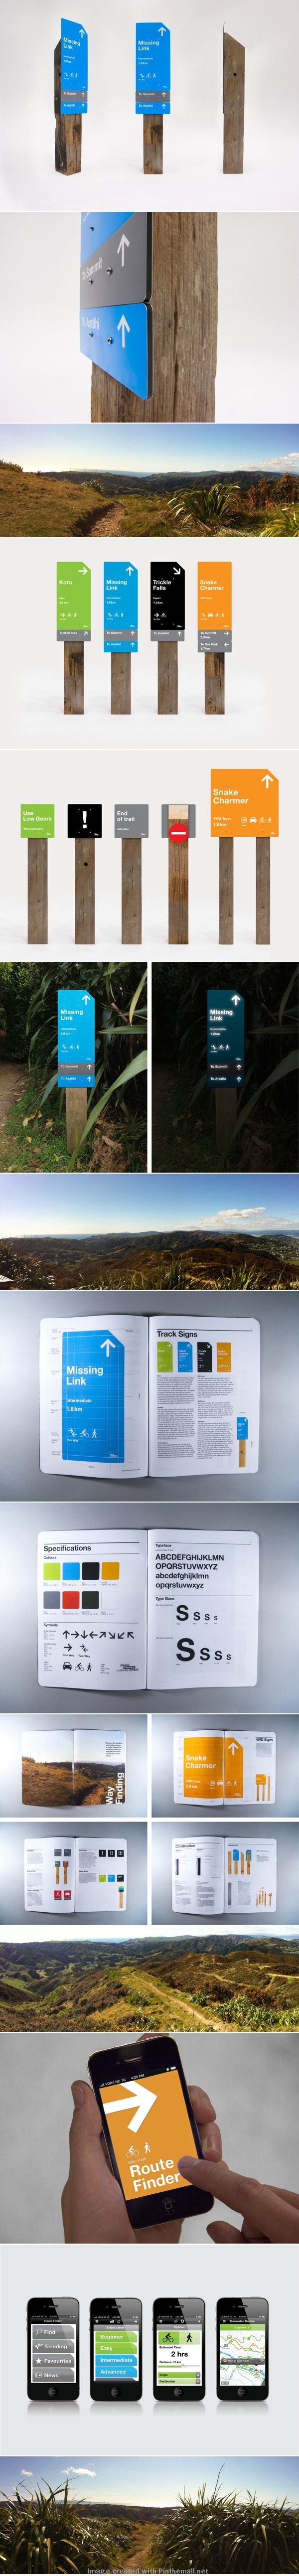 Makara Peak mountain bike trails wayfinding system, via Behance.